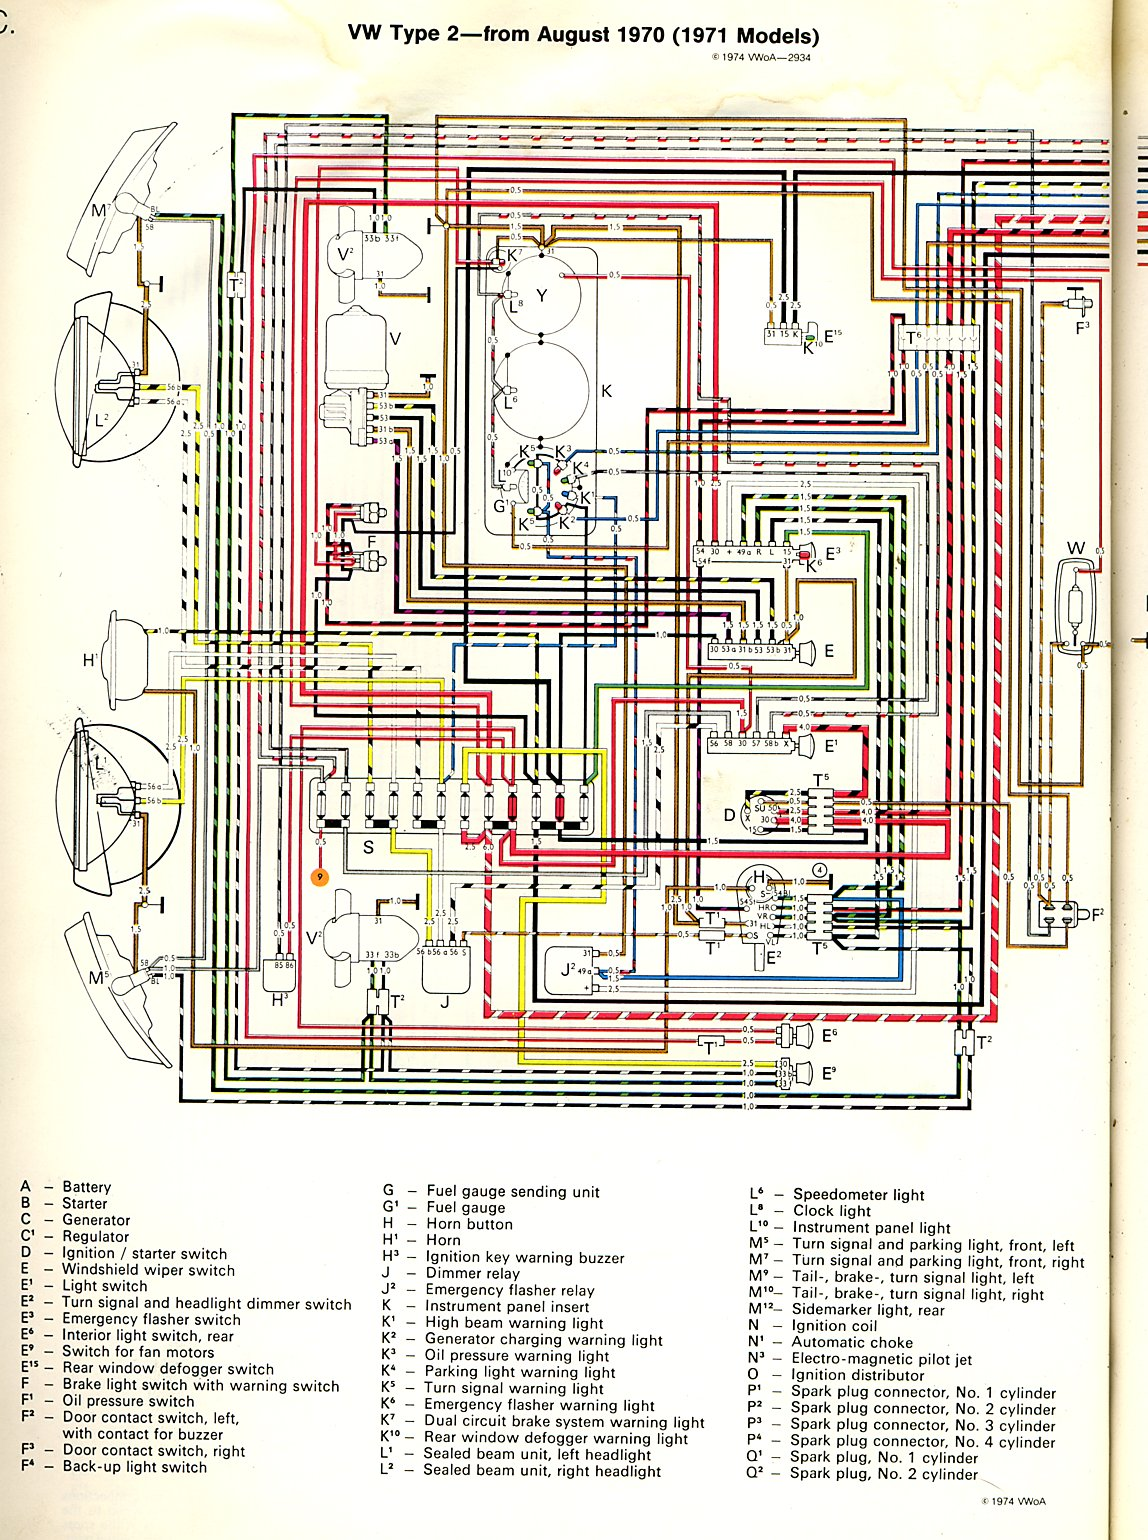 Type 2 Wiring Diagrams 1968 International Diagram